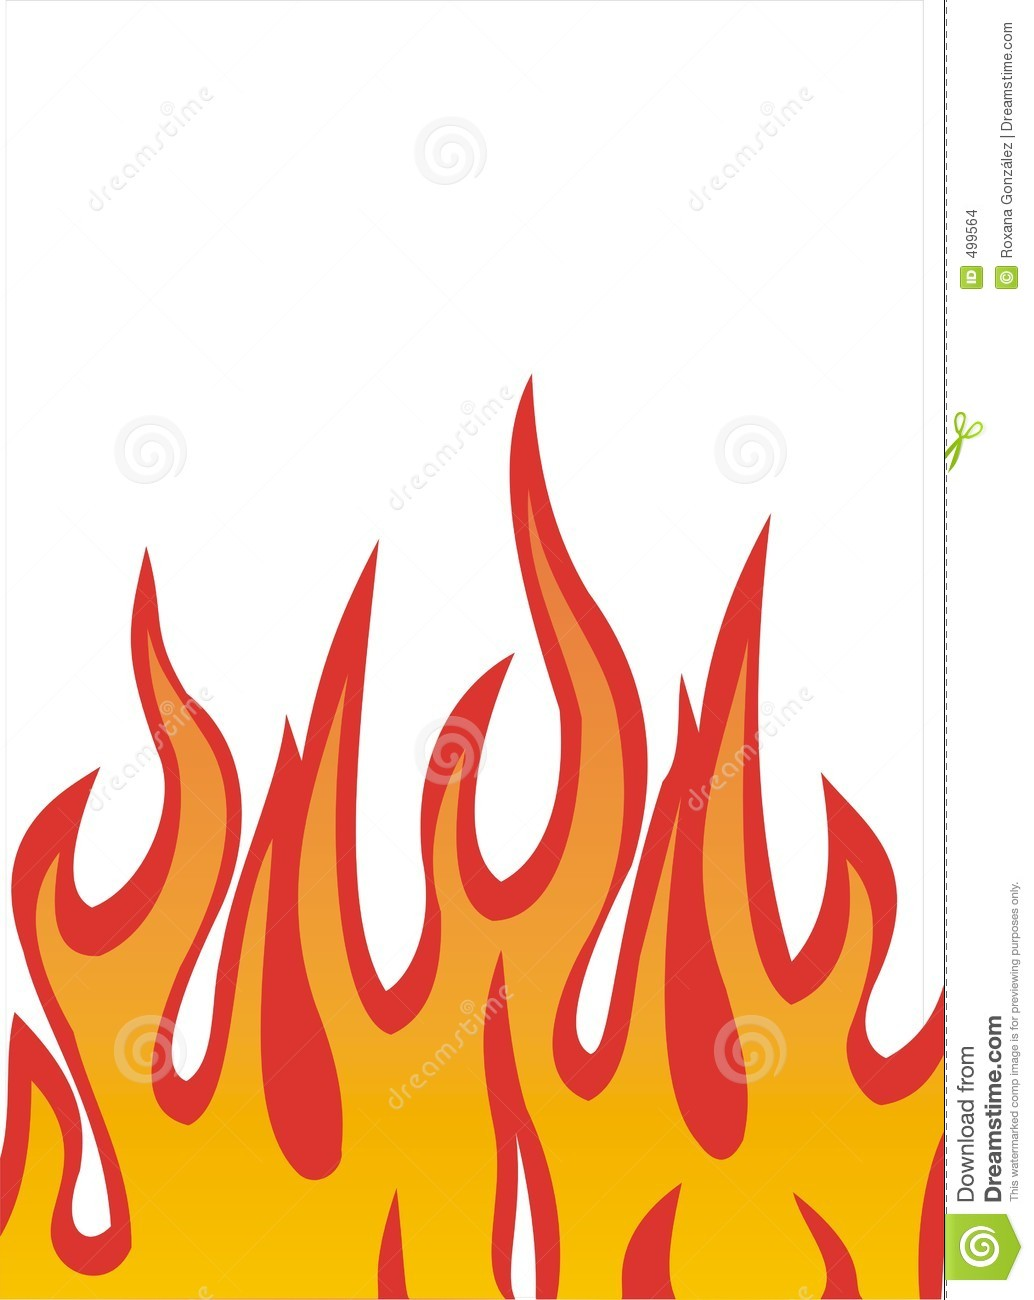 flames illustration stock illustration illustration of flames clip art black and white flame clip art for churches